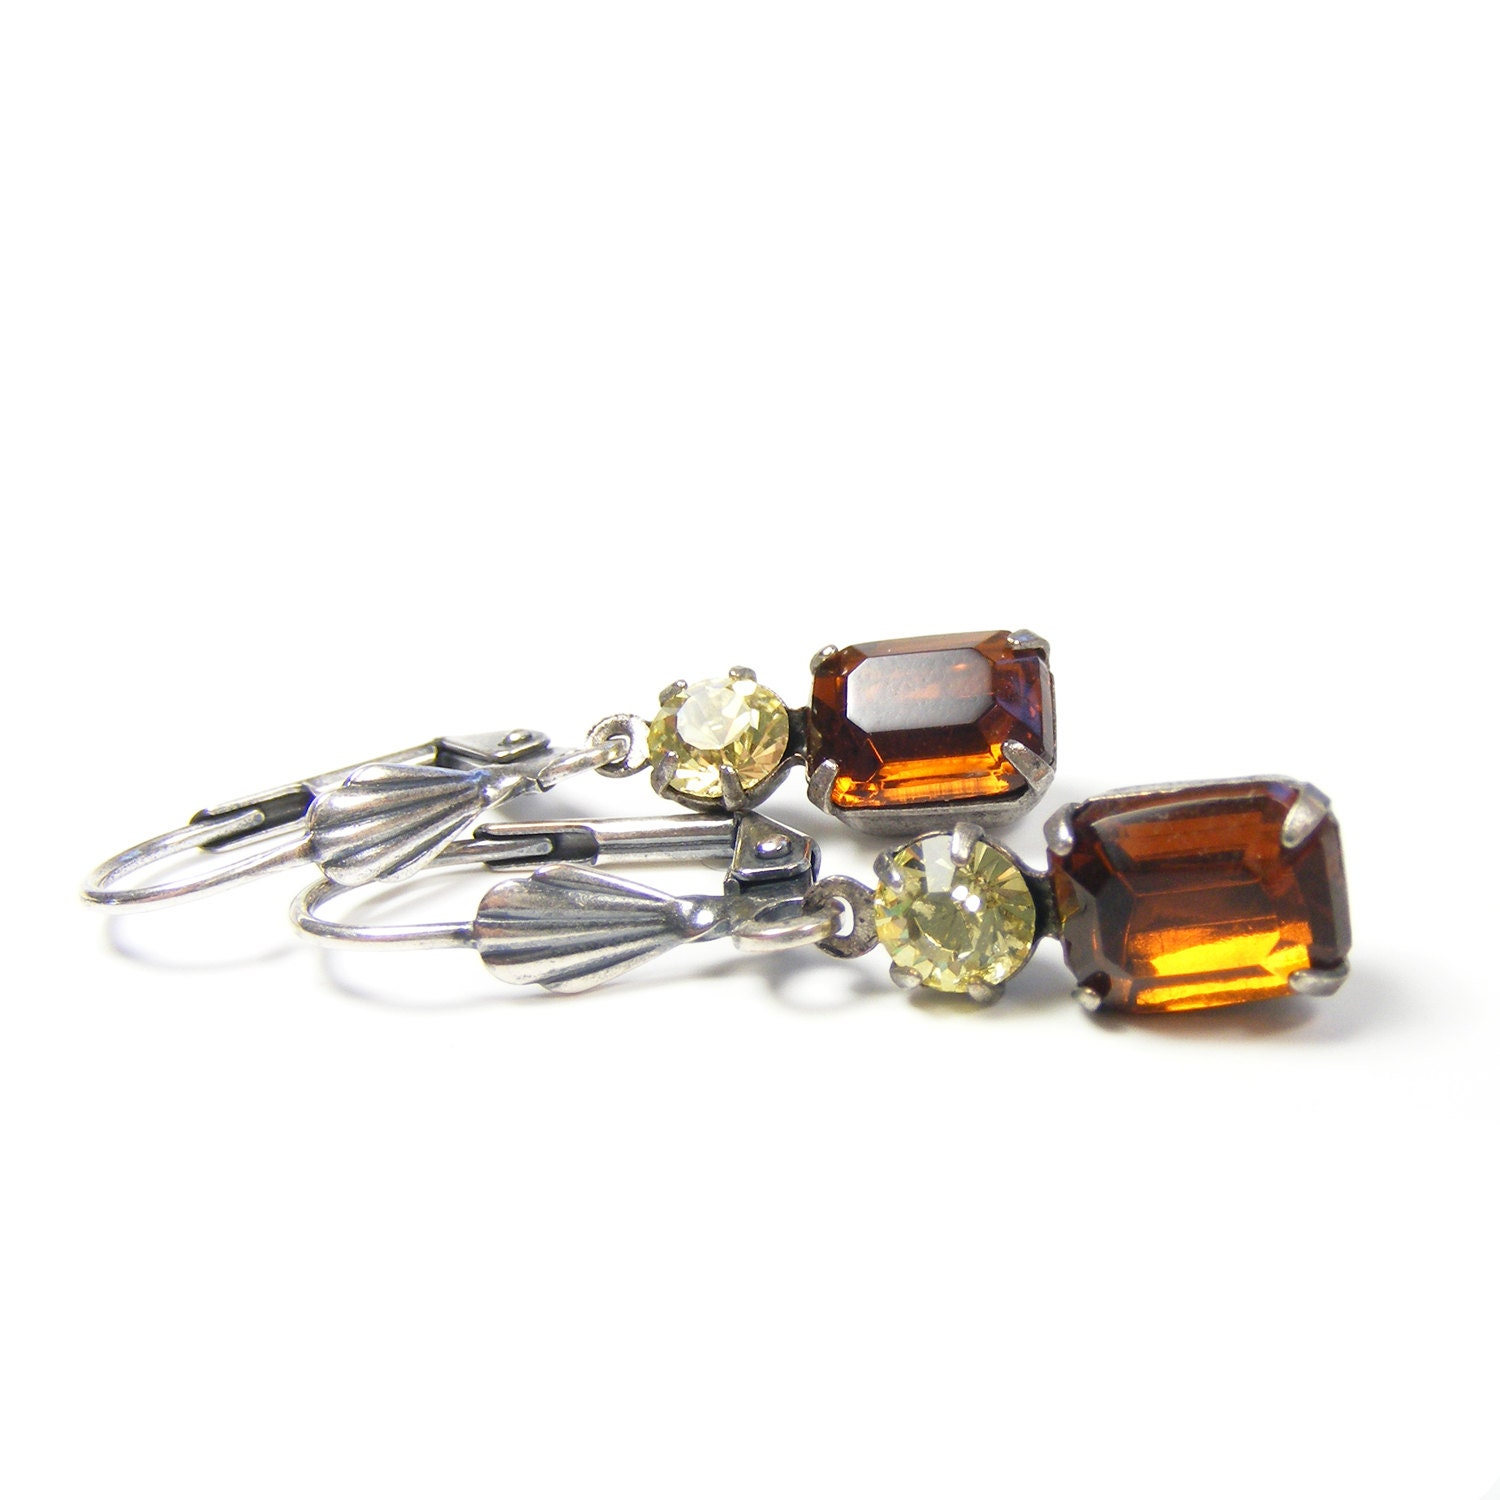 Vintage Rhinestone Earrings, Petite Drop Earrings, Downton Abbey Vintage Style Earrings, Dark Madeira Topaz & Jonquil Pale Yellow